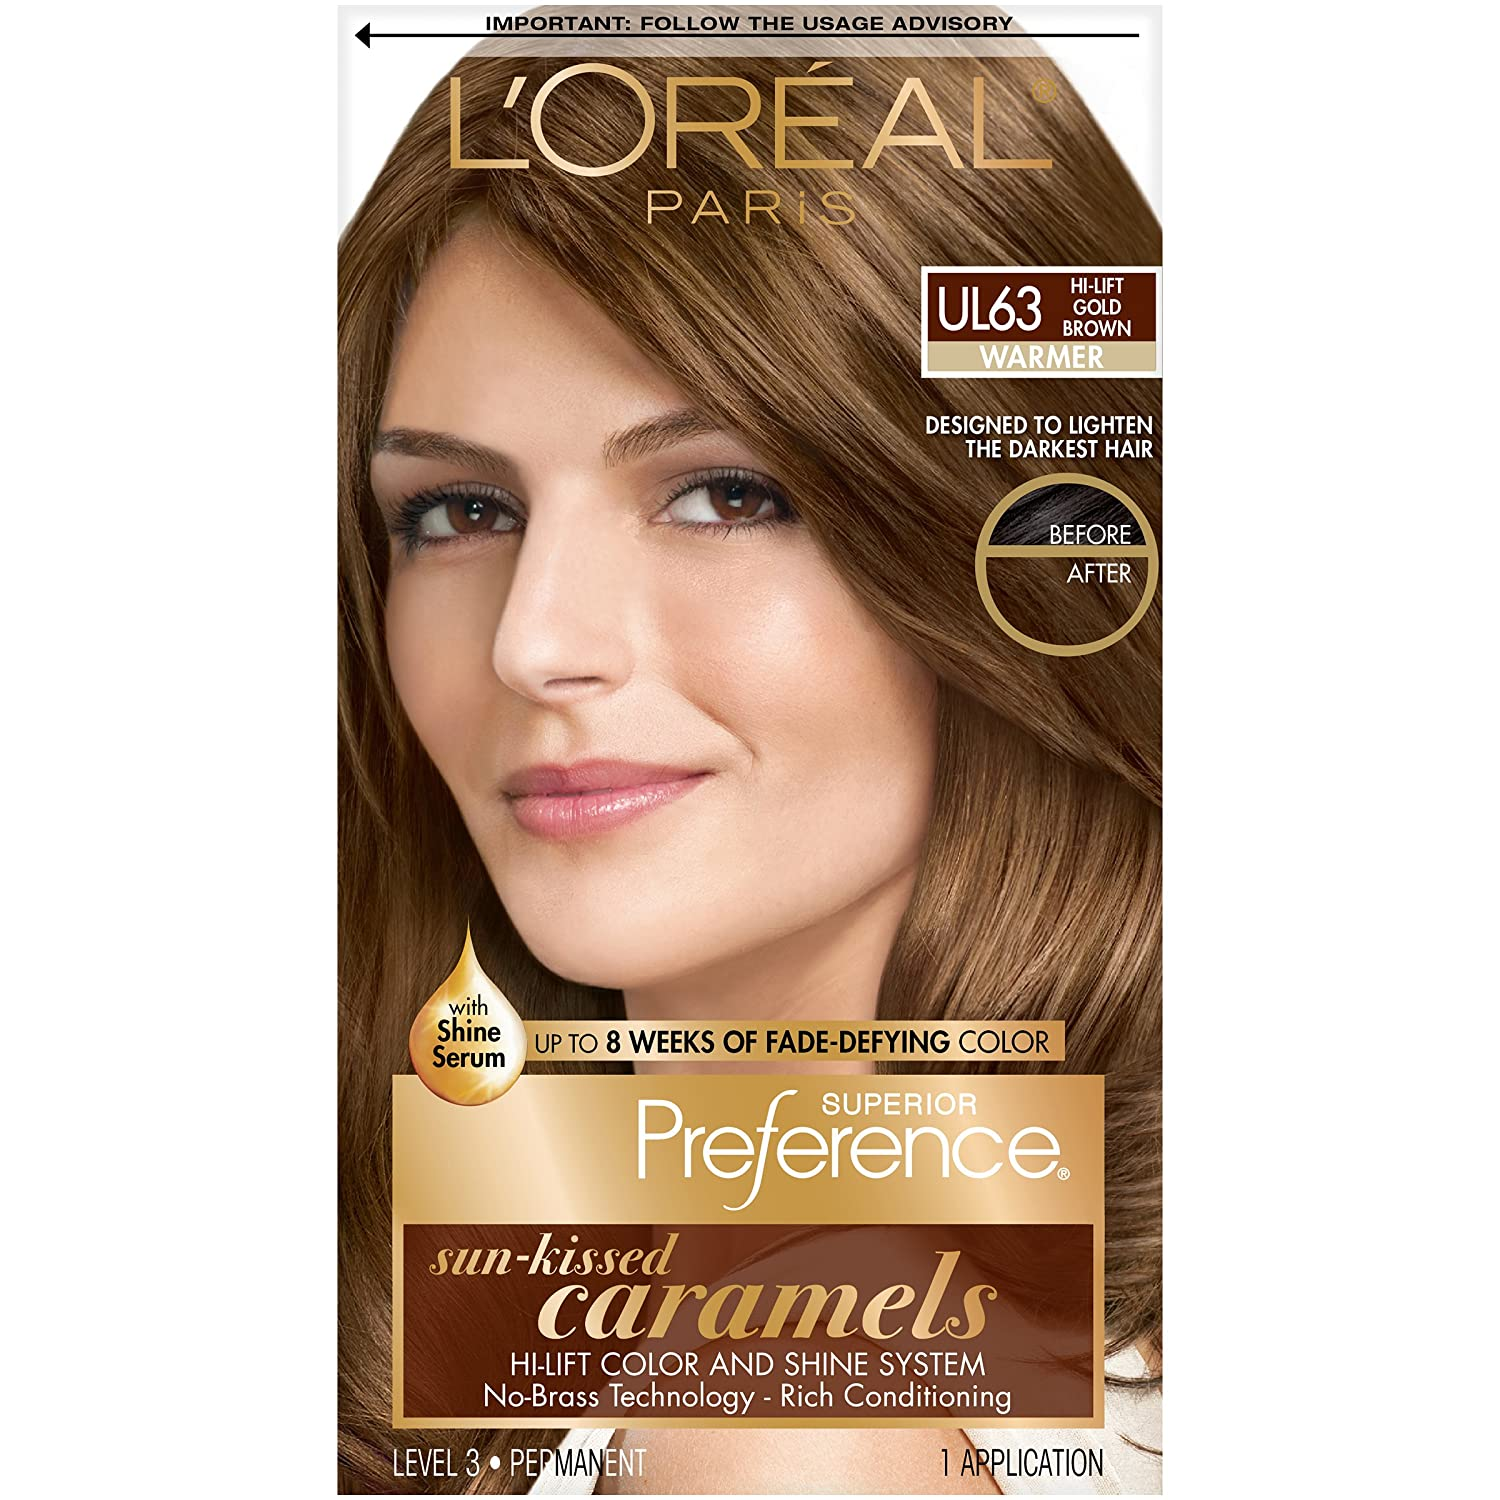 L'Oréal Paris Superior Preference Fade-Defying + Shine Permanent Hair Color, UL63 Hi-Lift Gold Brown, 1 kit Hair Dye